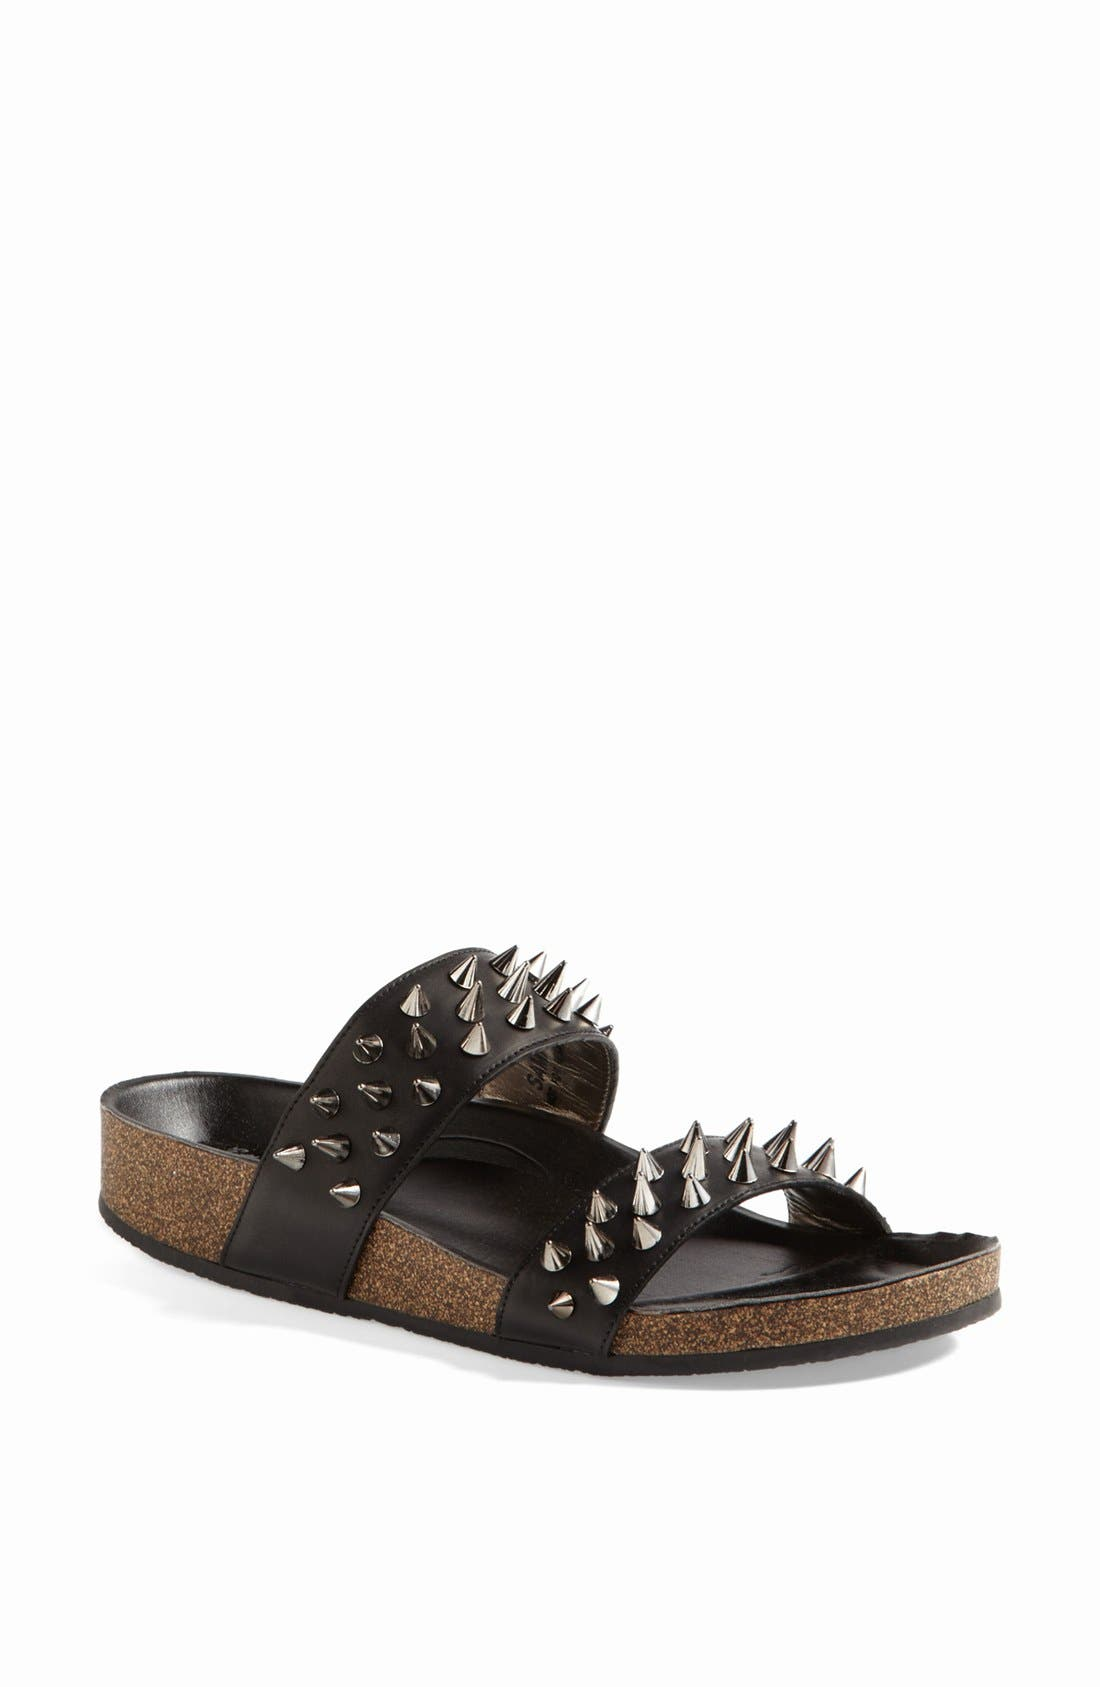 'Ace' Sandal,                         Main,                         color, Black